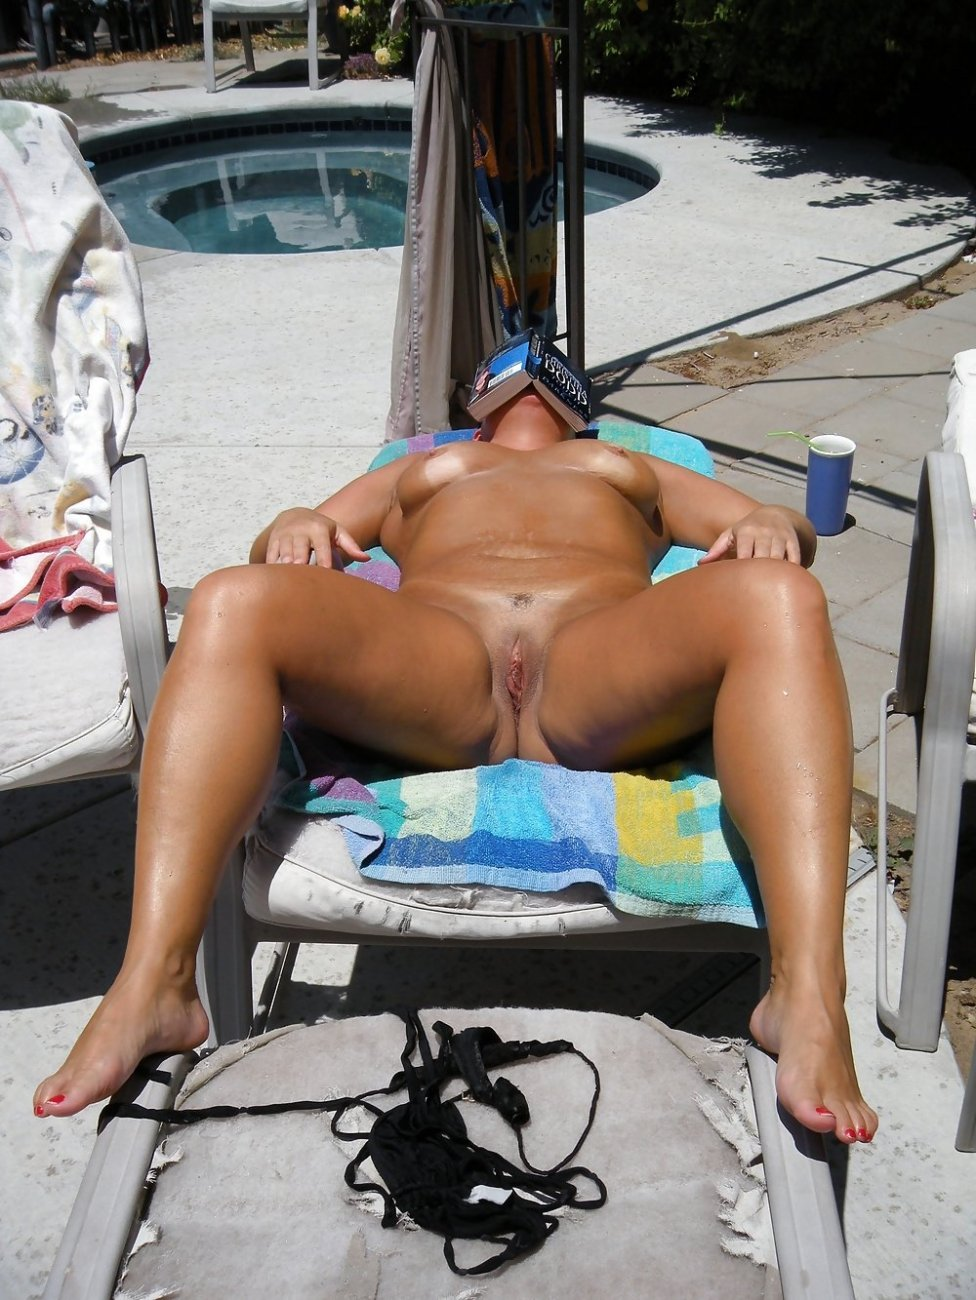 Milf nude sun bathing boats xxx